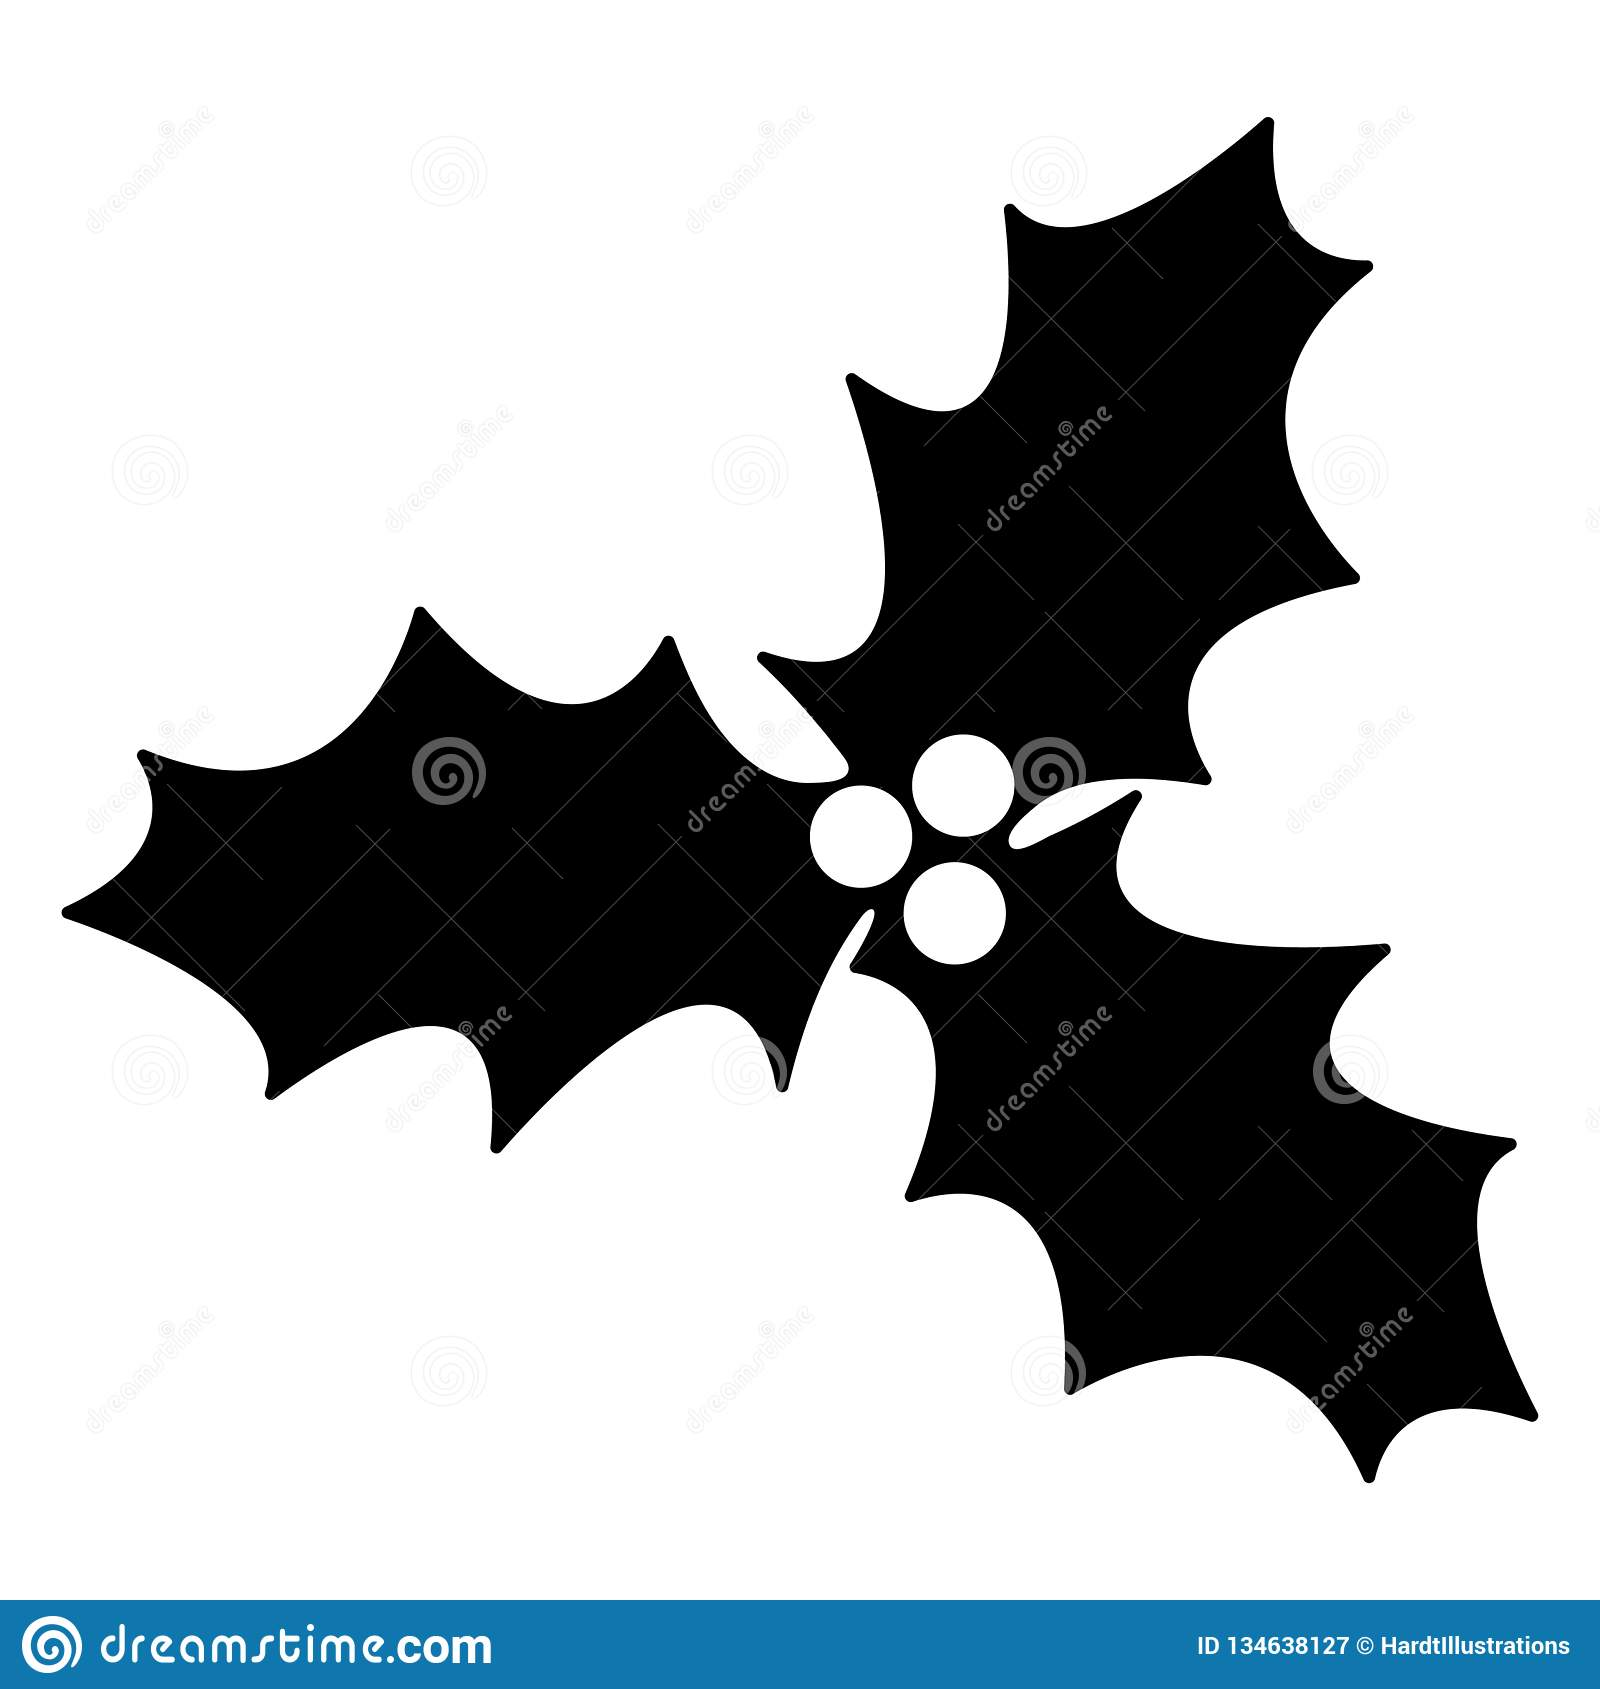 Christmas Holly Silhouette.Holly Silhouette Stock Vector Illustration Of Celebration